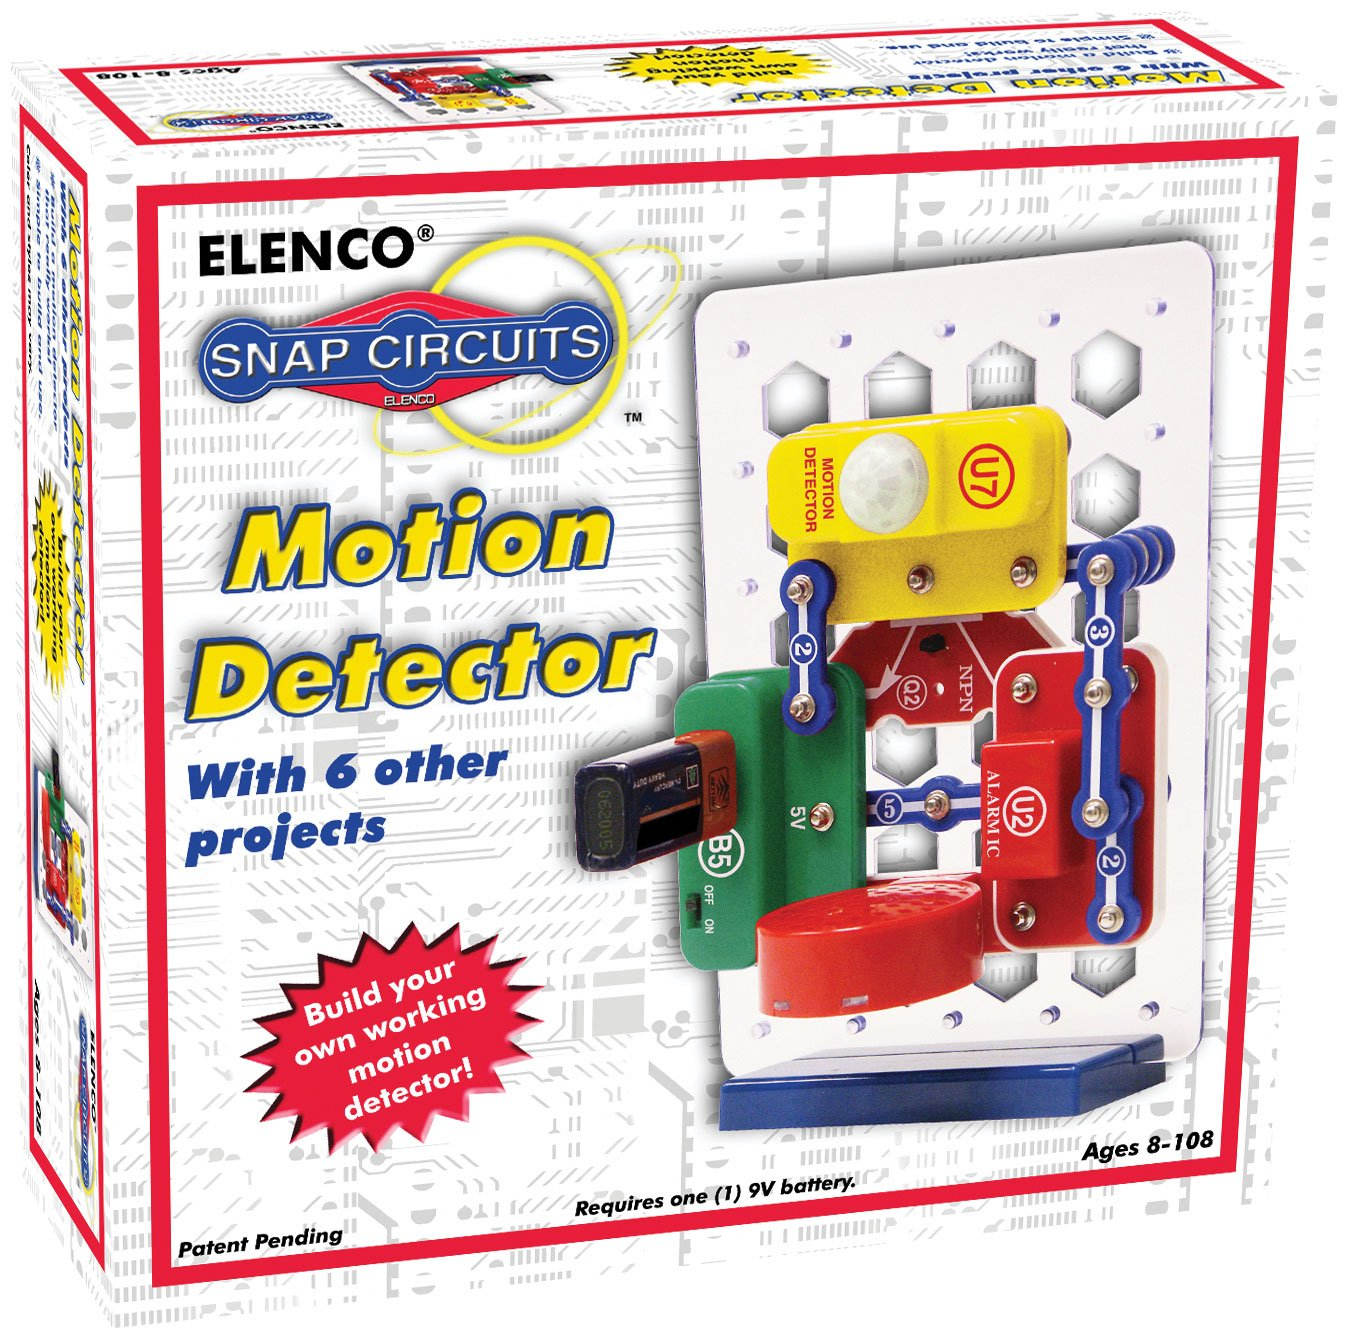 Elenco Snap Circuits Motion Detector Kit Toys Games Lights Electric Circuit Science By